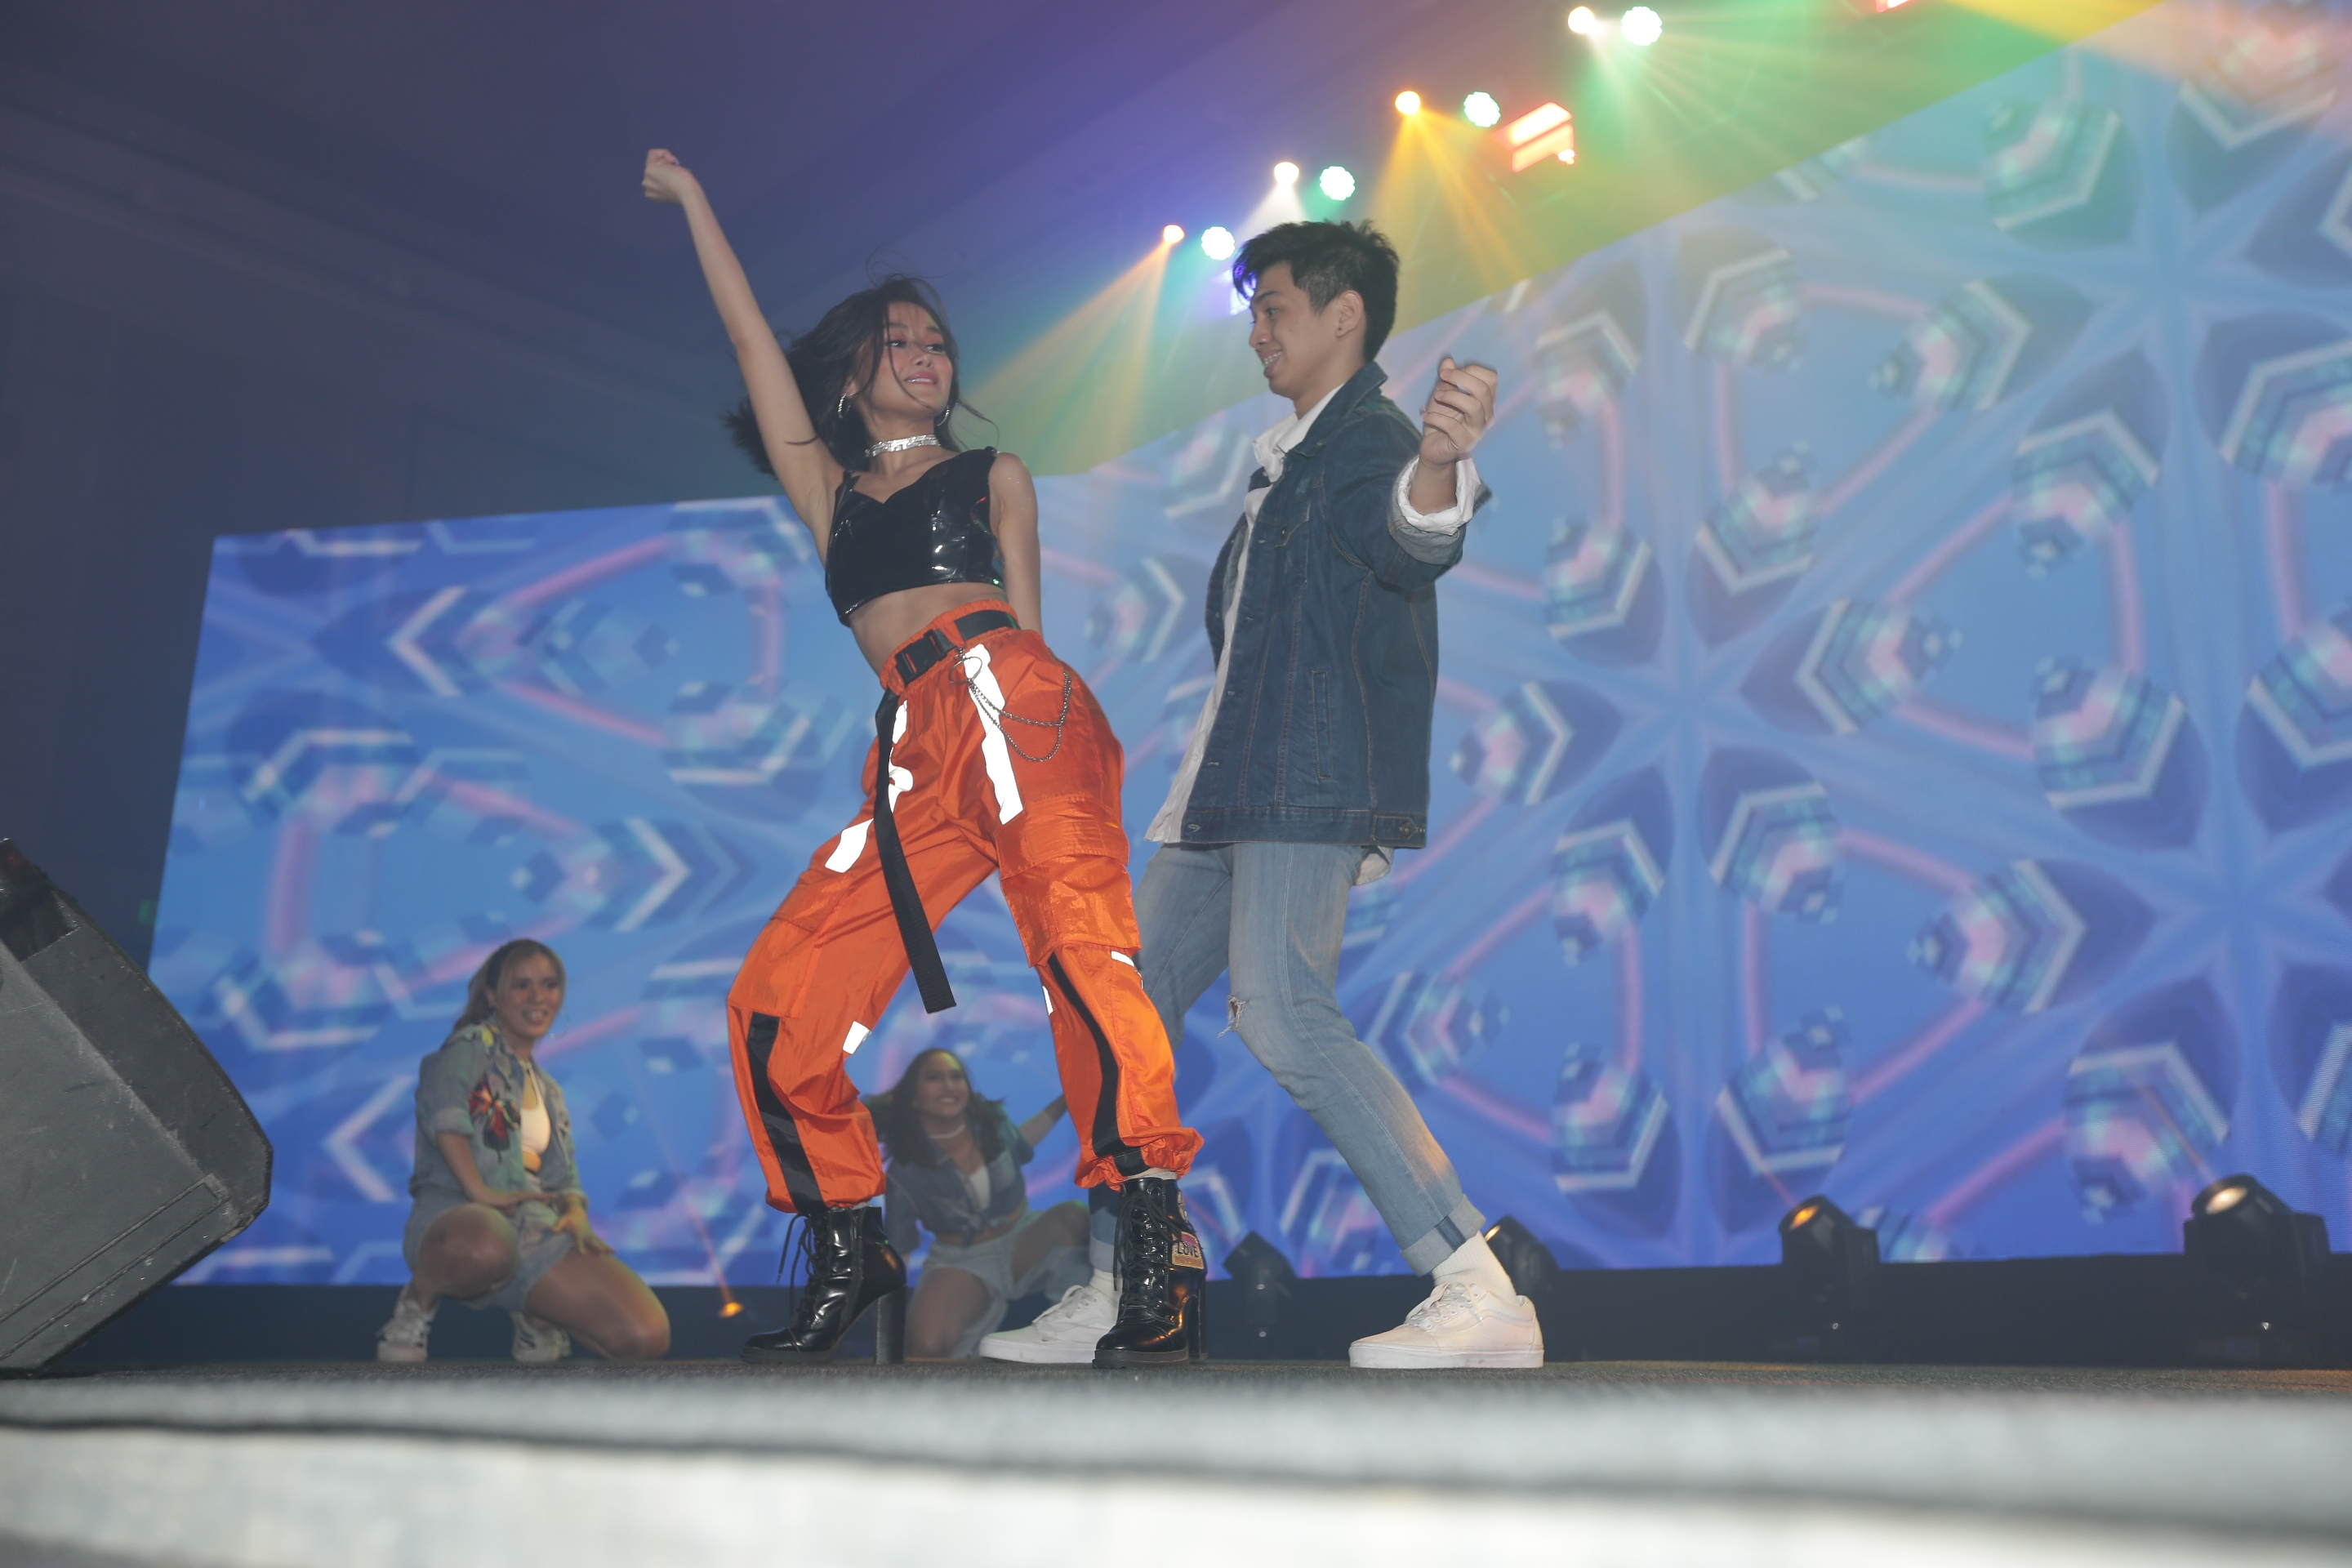 DANCE MEDLEY. Chienna Filomeno performed a medley of popular dance songs for the Vivo V17 Pro launch.